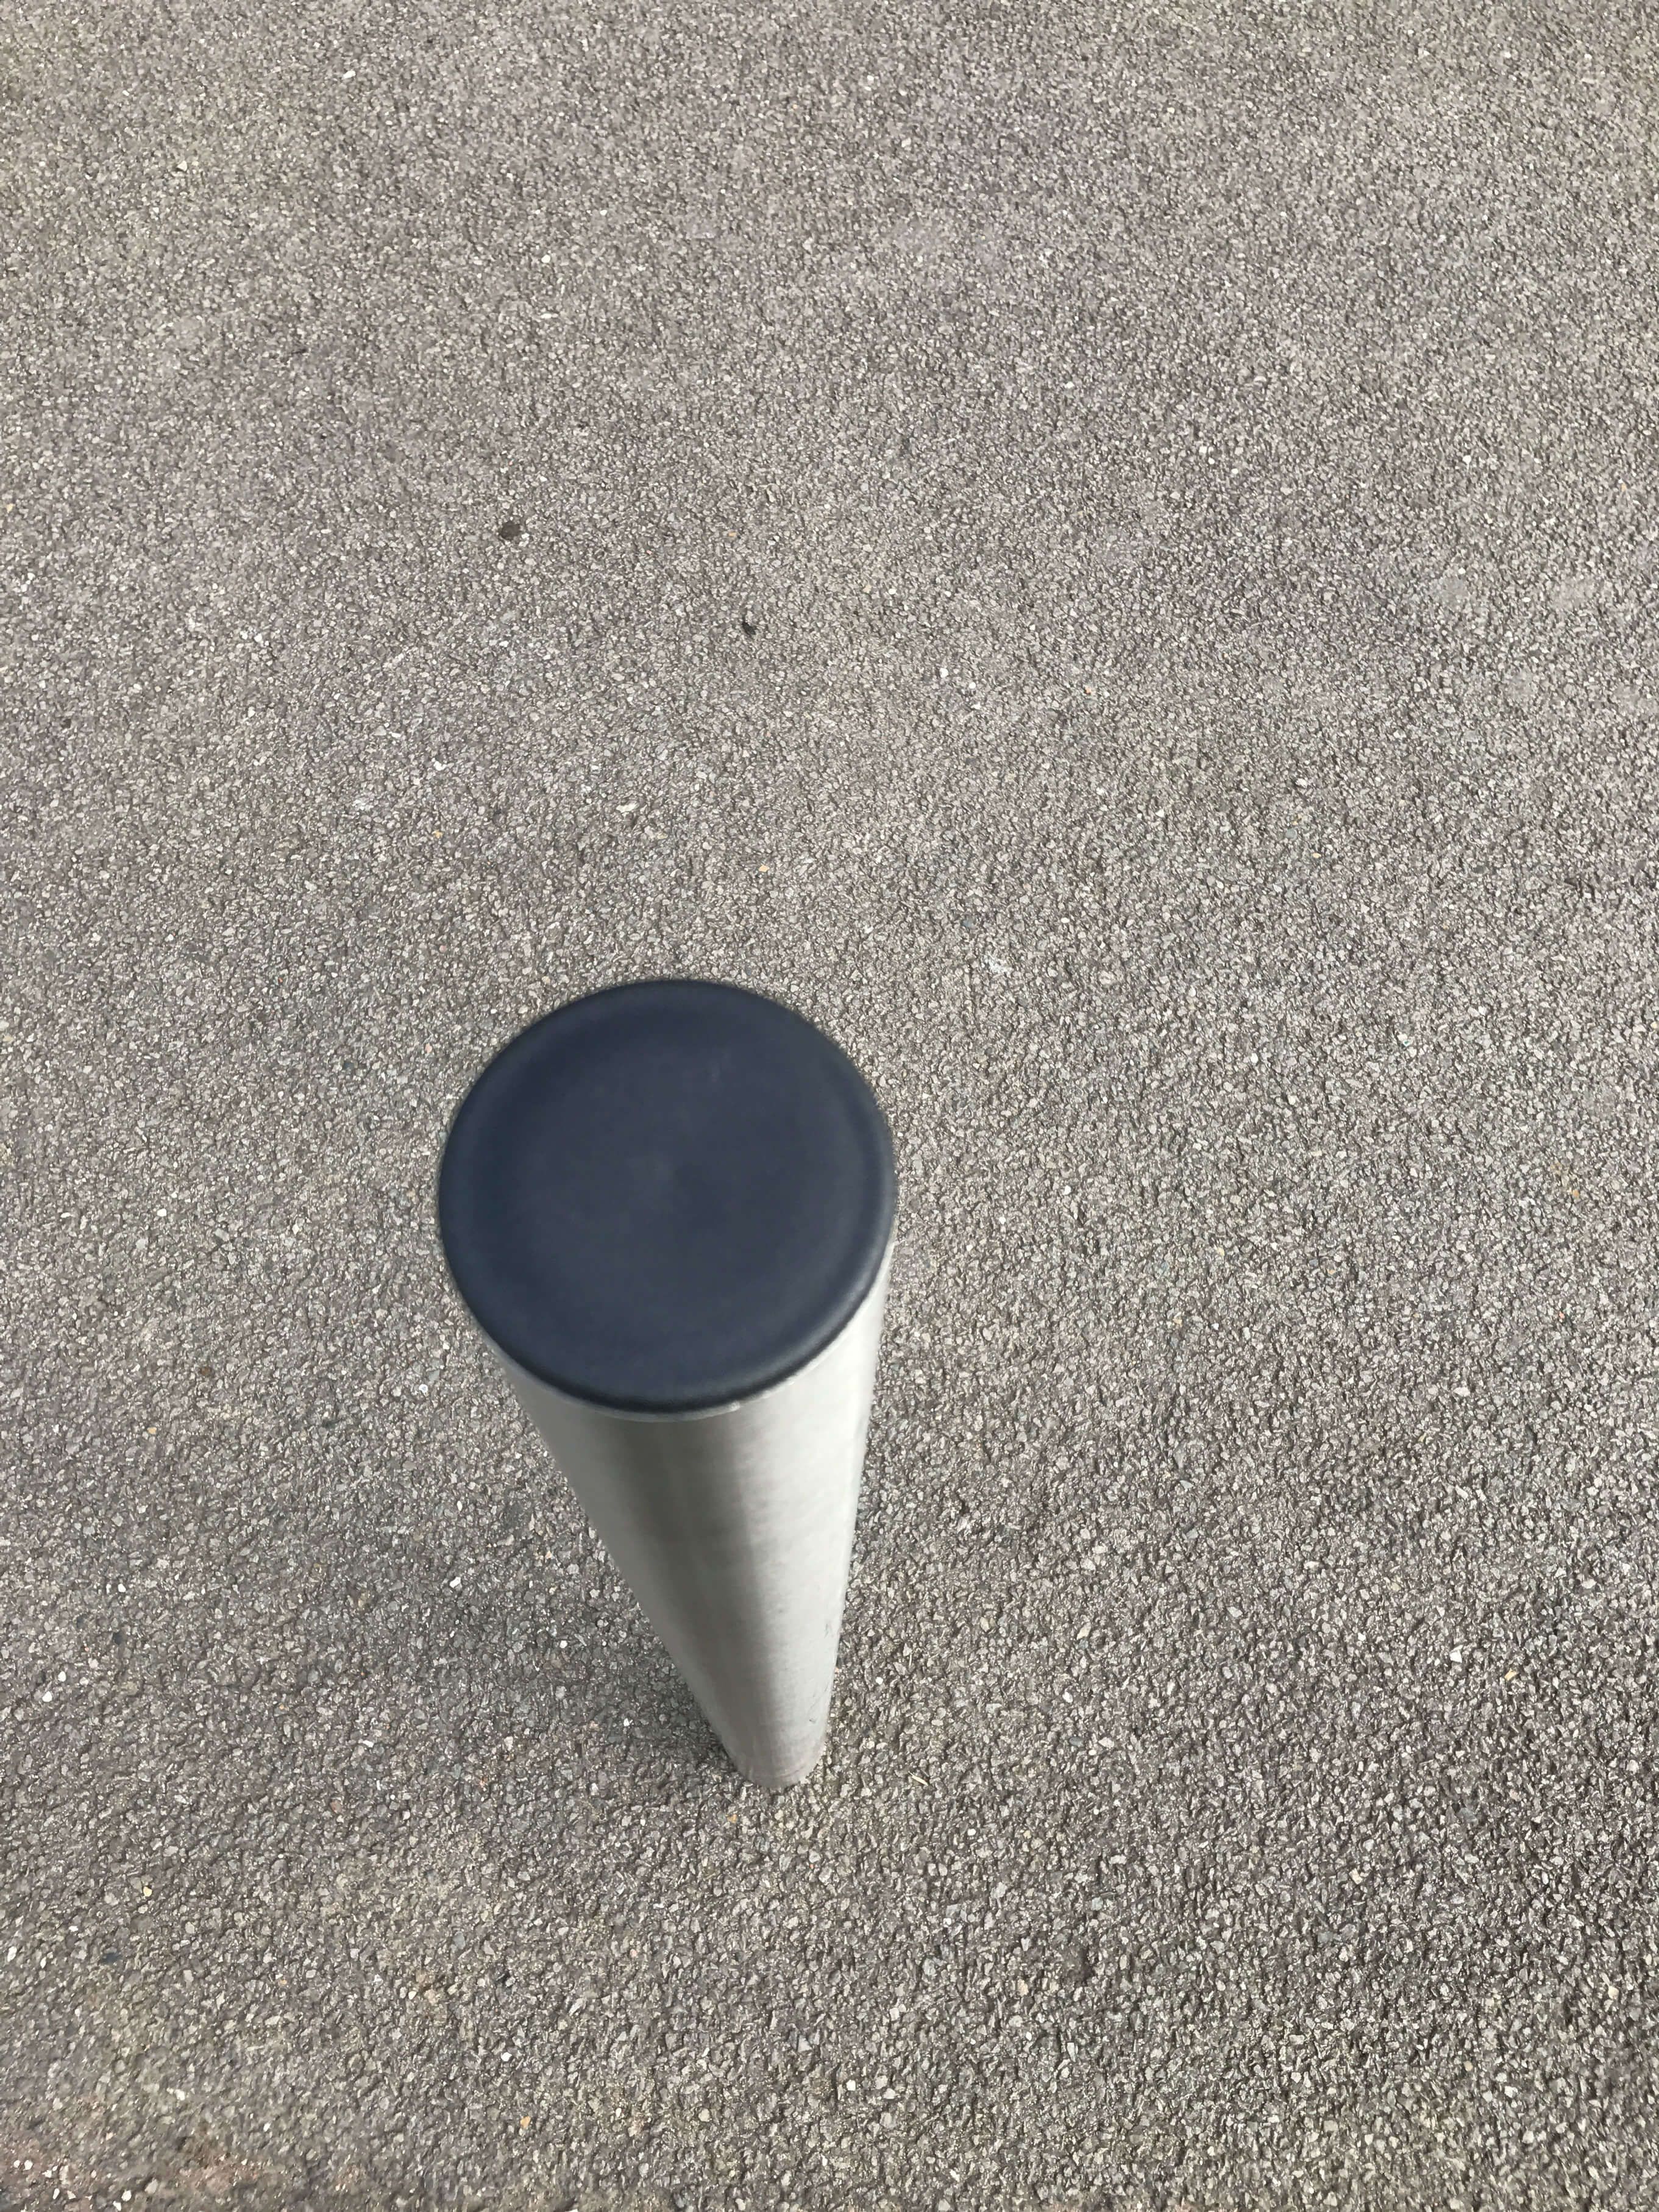 fixed anti ram bollard